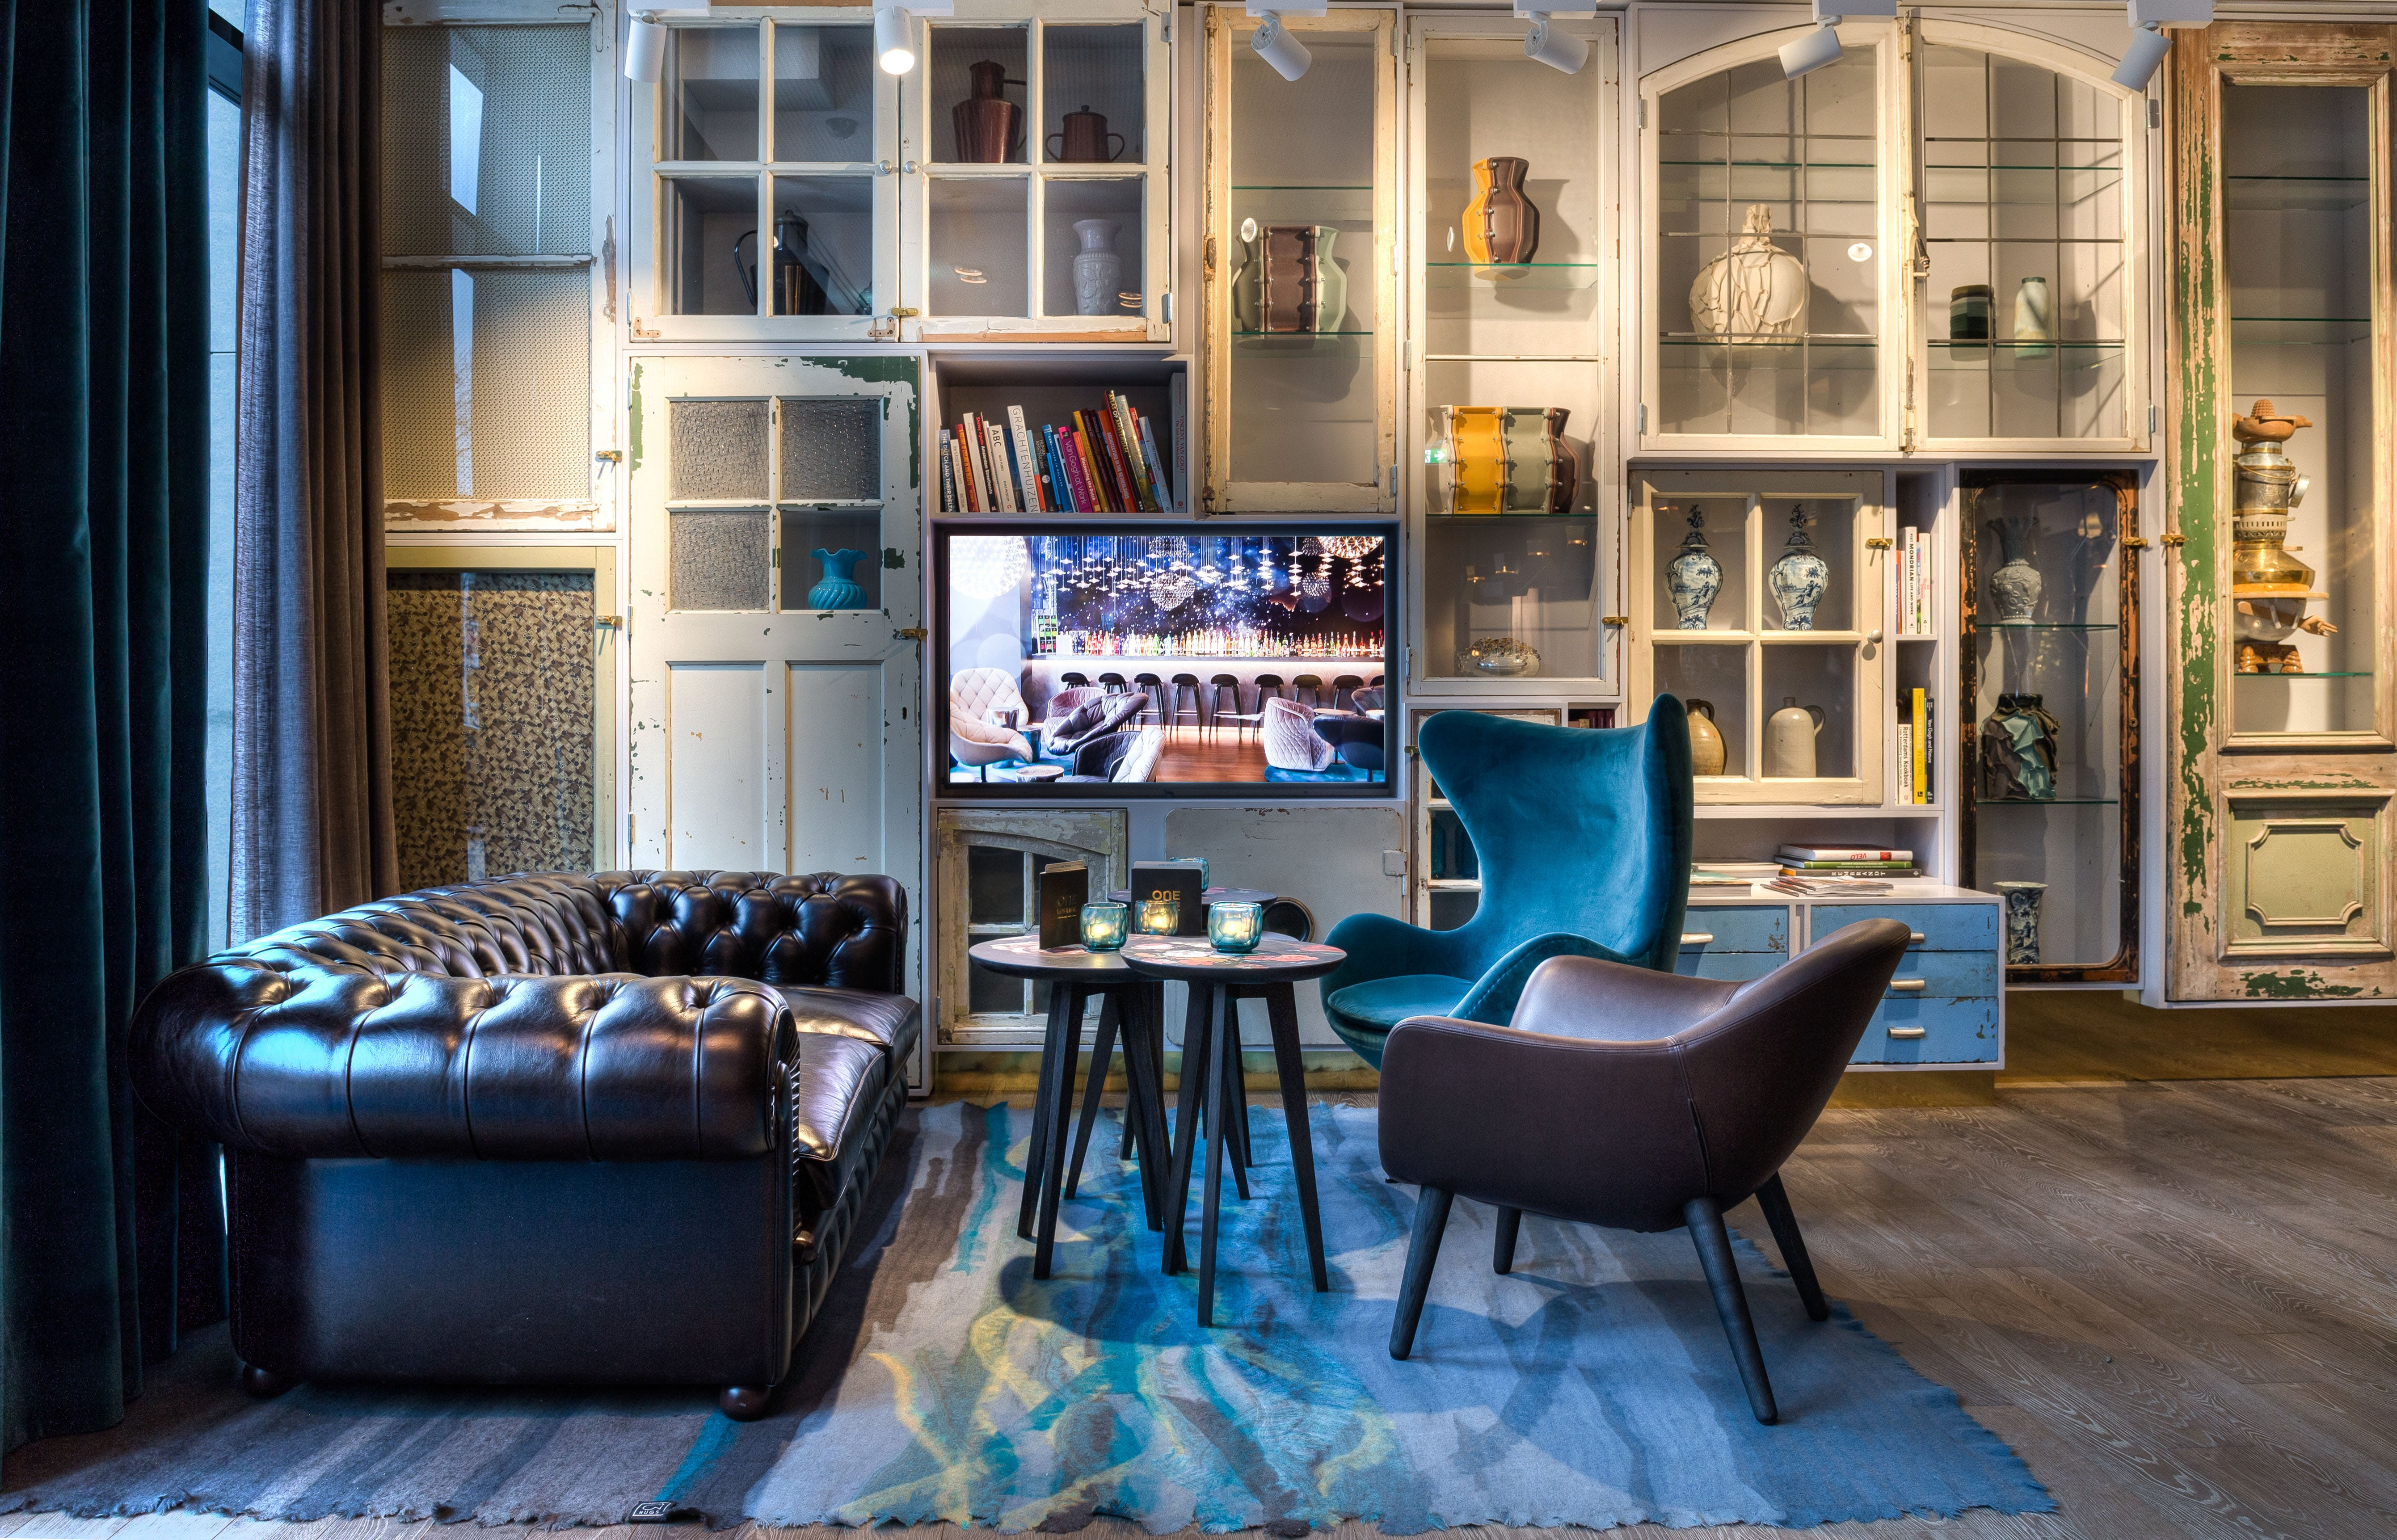 Motel One communal space